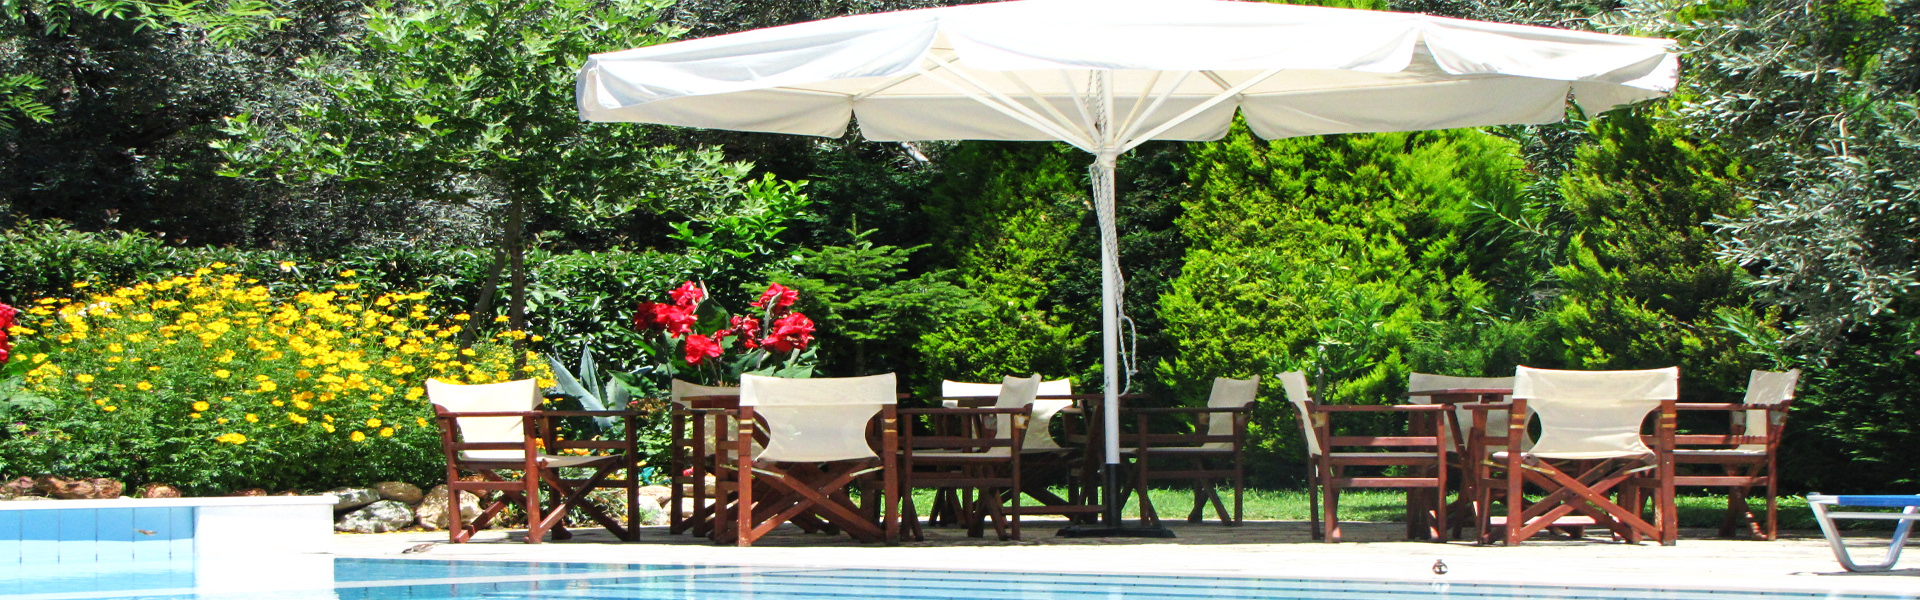 <h2>Parasols and garden furniture</h2><p>Unique furnishing and decoration options</p><div class='bgslideshowmore'><a href='http://www.tenteshalkidiki.4ty.gr/more3.php?l=en' >More...</a></div>